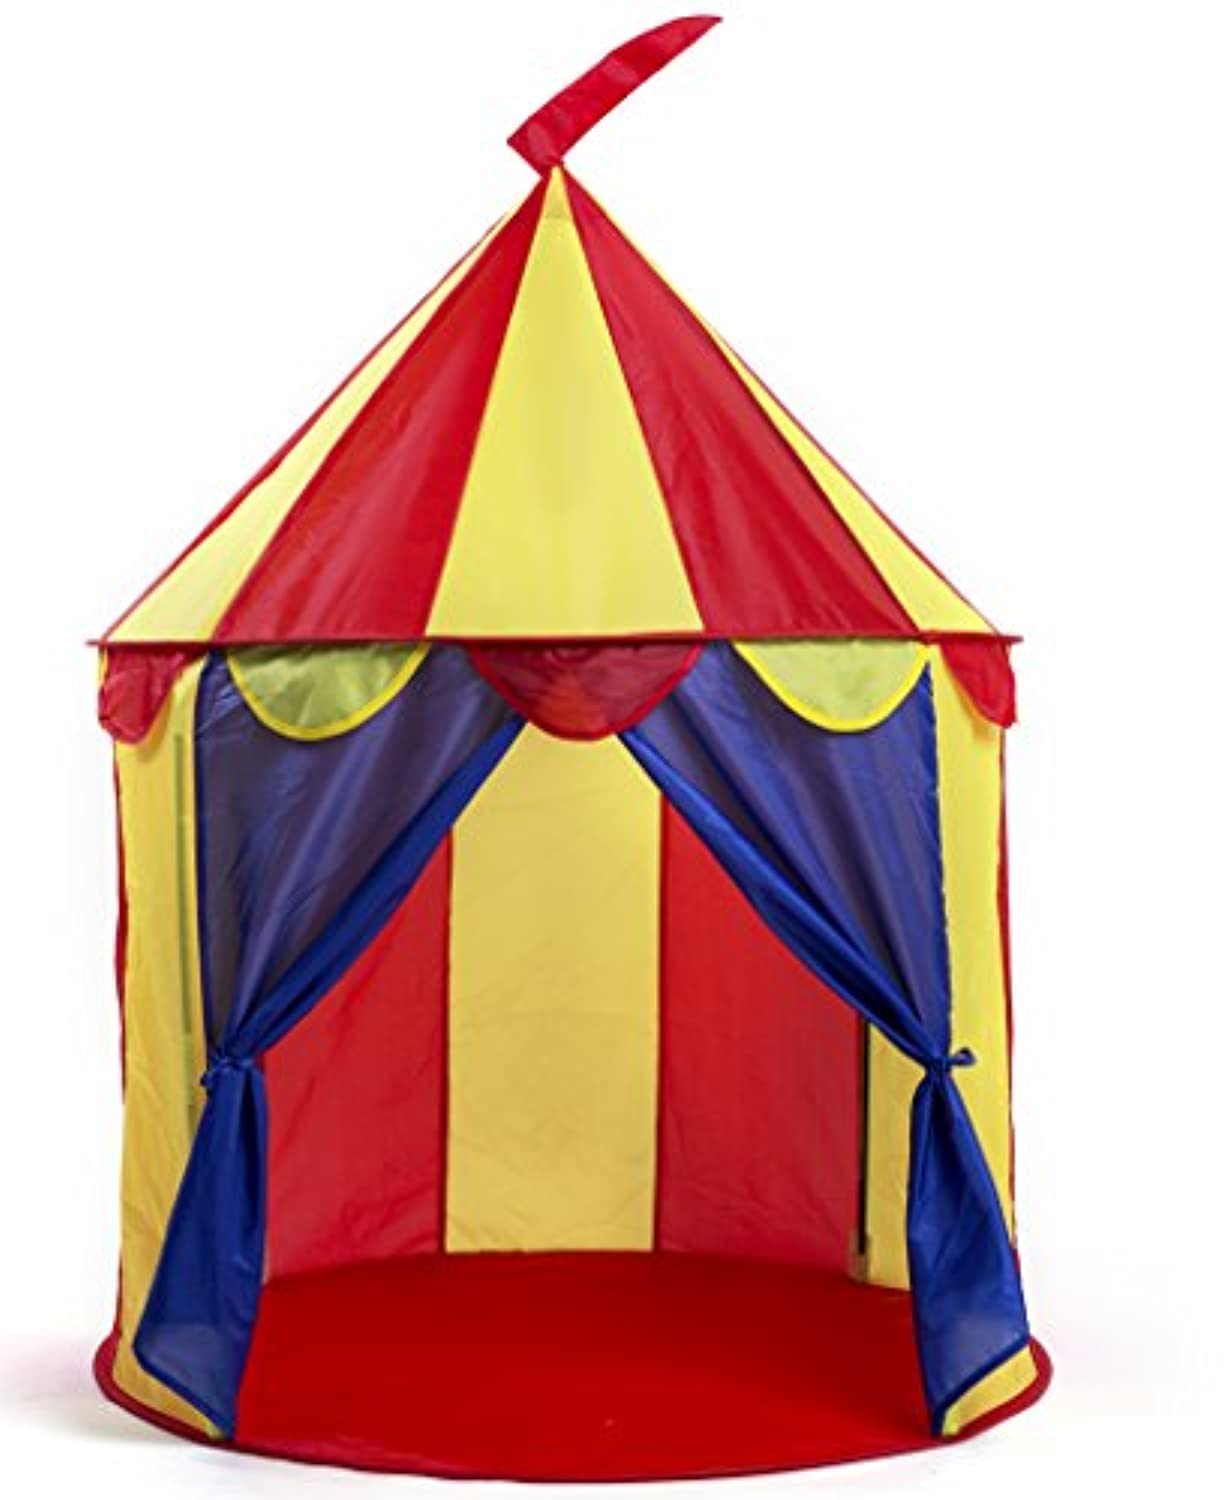 [Kiddey]Kiddey SALE!!! Circus Pop Up Play Tent for Kids Indoor/Outdoor Use Fun, Brightly Colored House Easy to [並行輸入品]